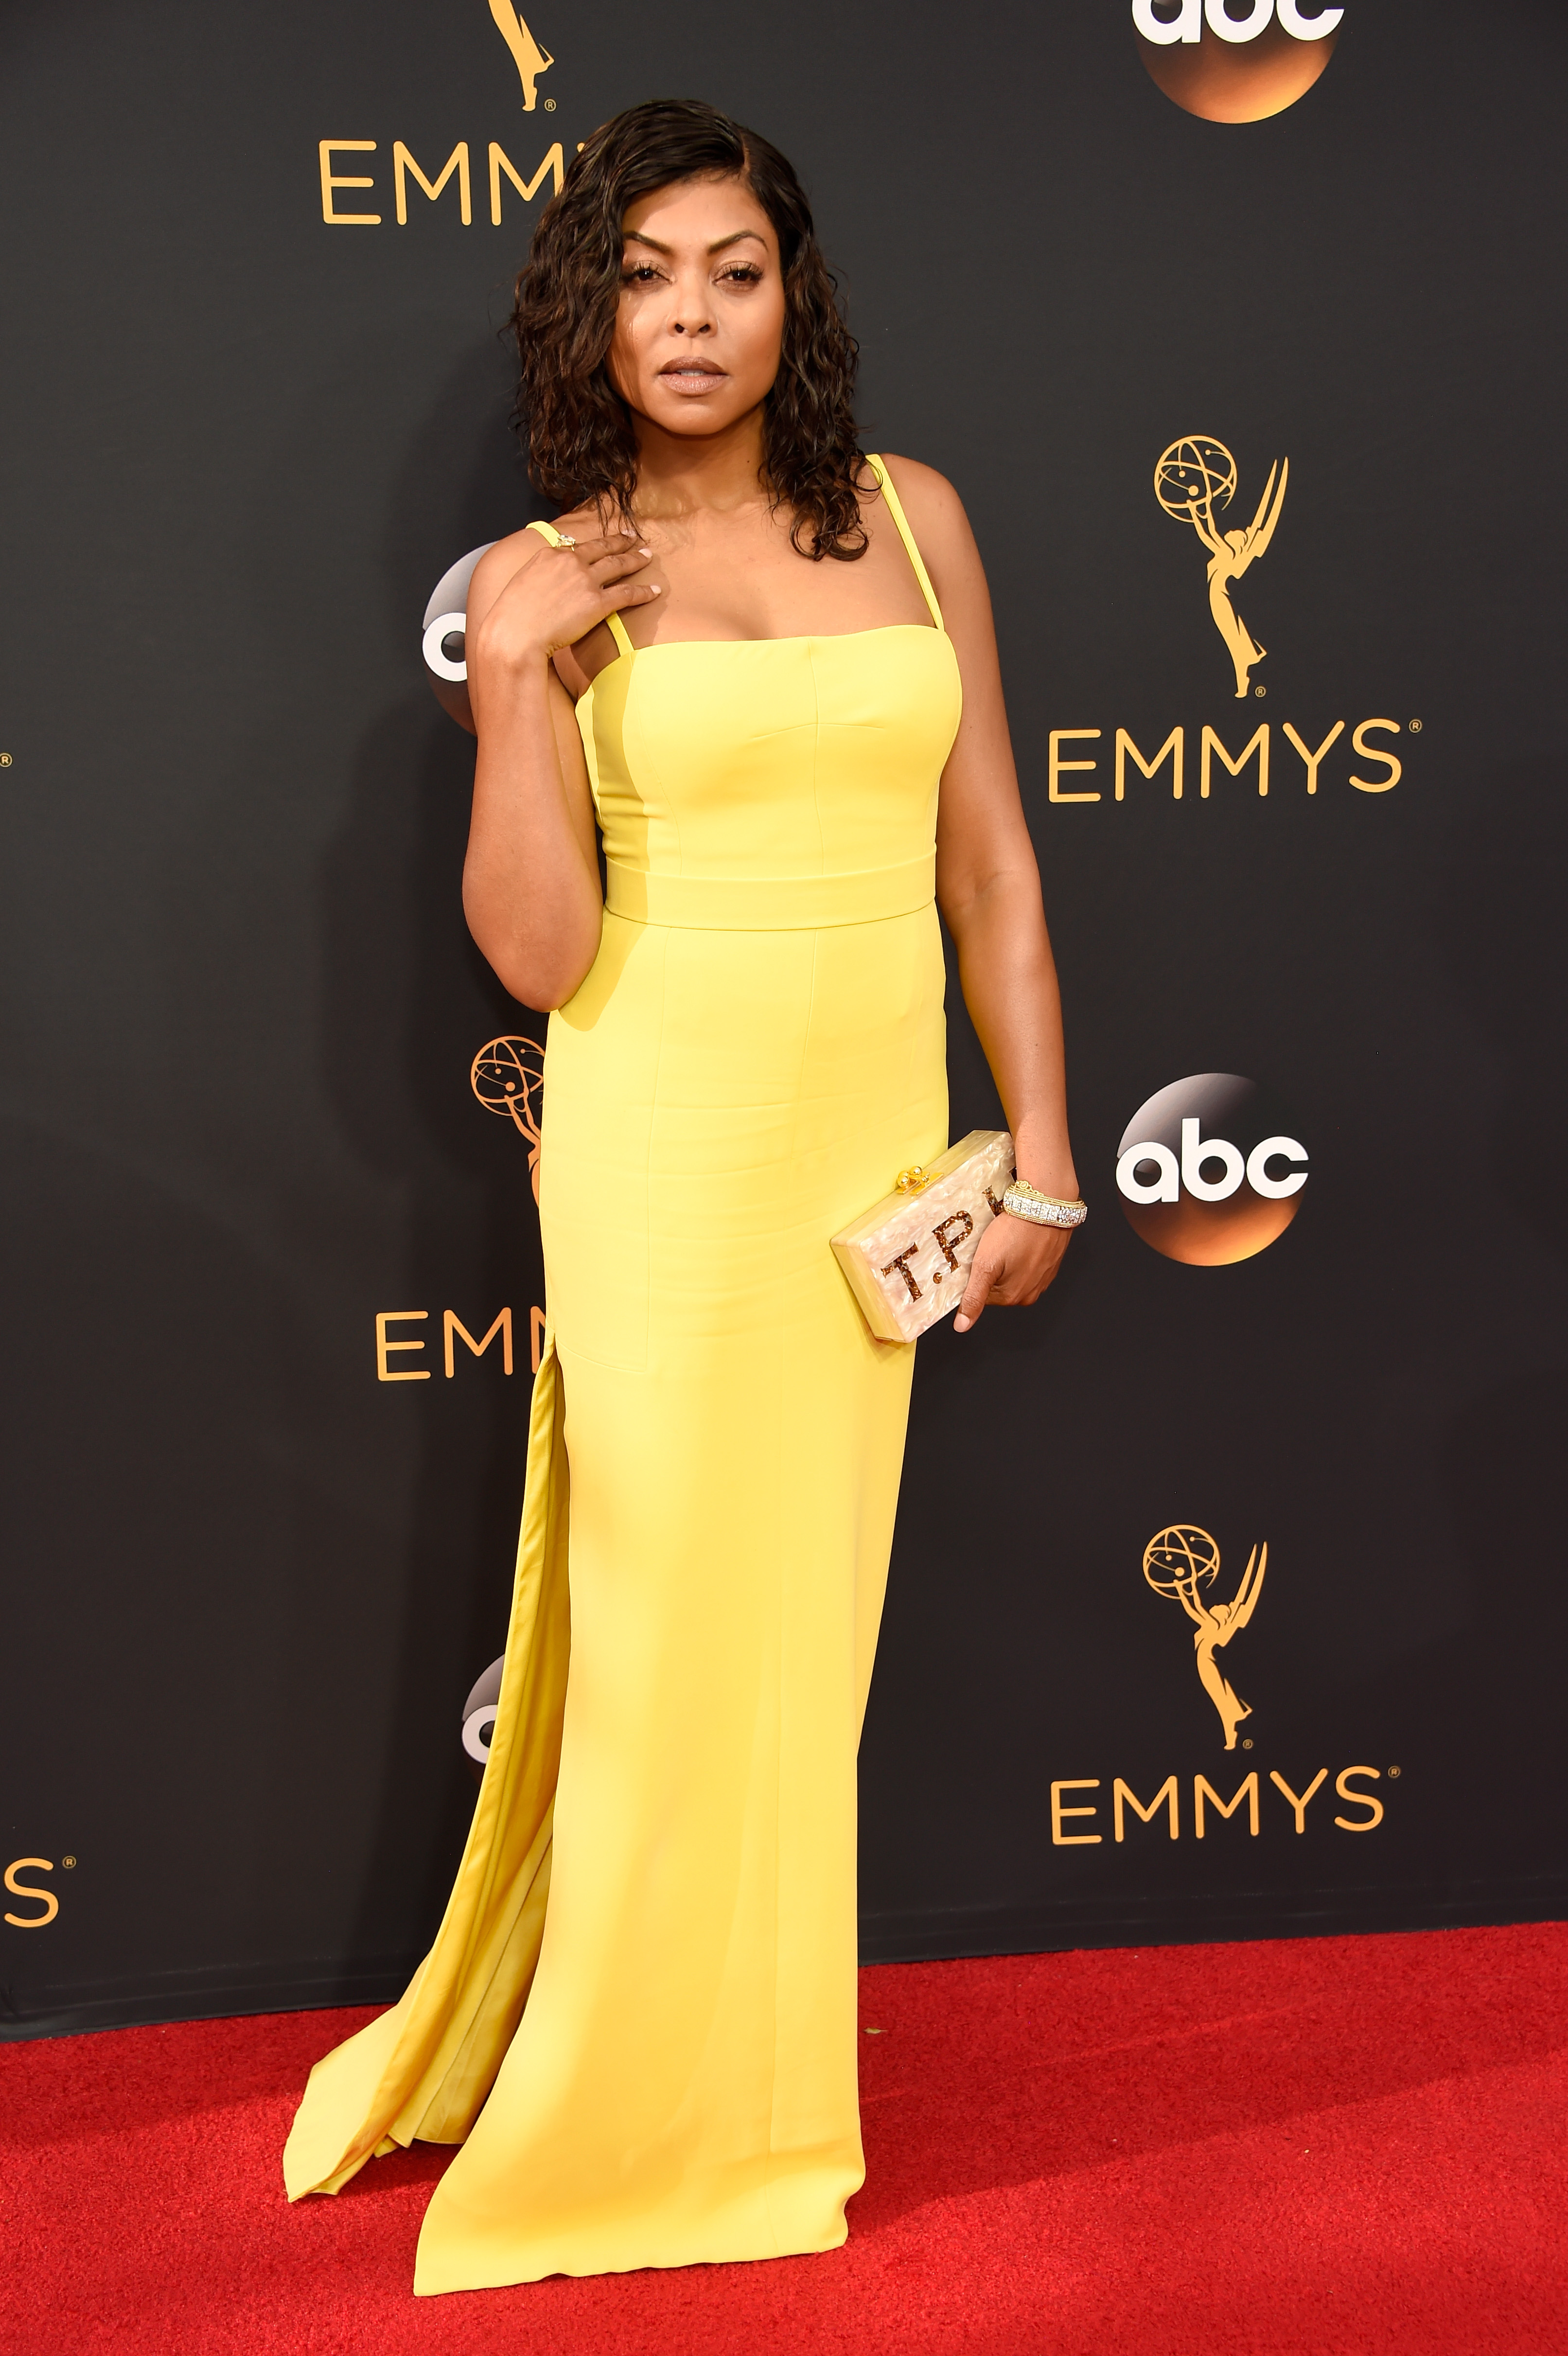 Taraji P. Henson arrives at the 68th Annual Primetime Emmy Awards at Microsoft Theater on Sept. 18, 2016 in Los Angeles.